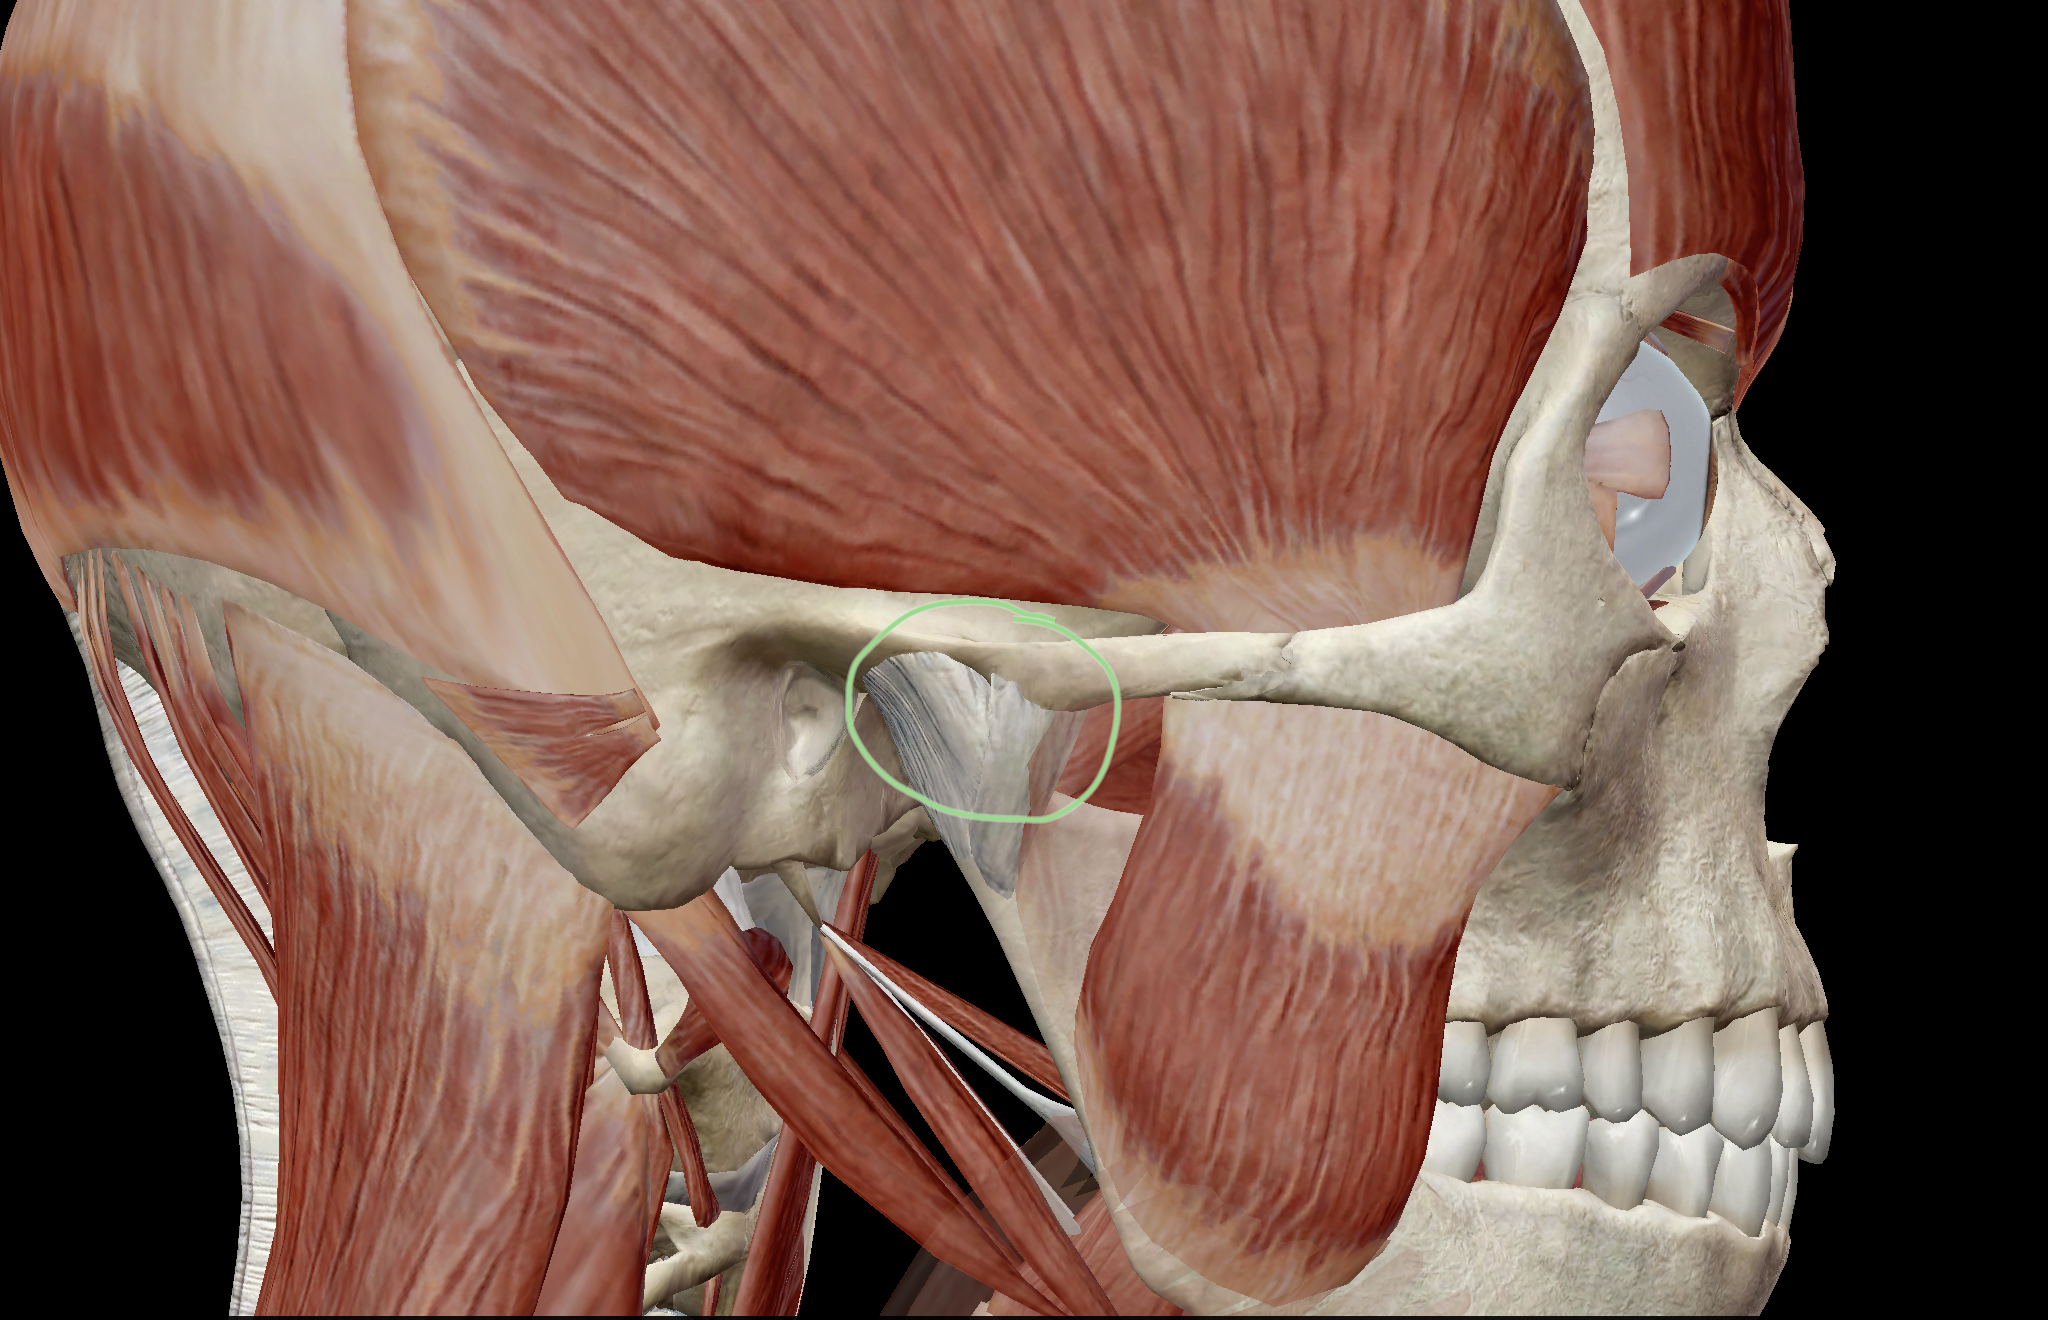 The temporomandibular joint, circled